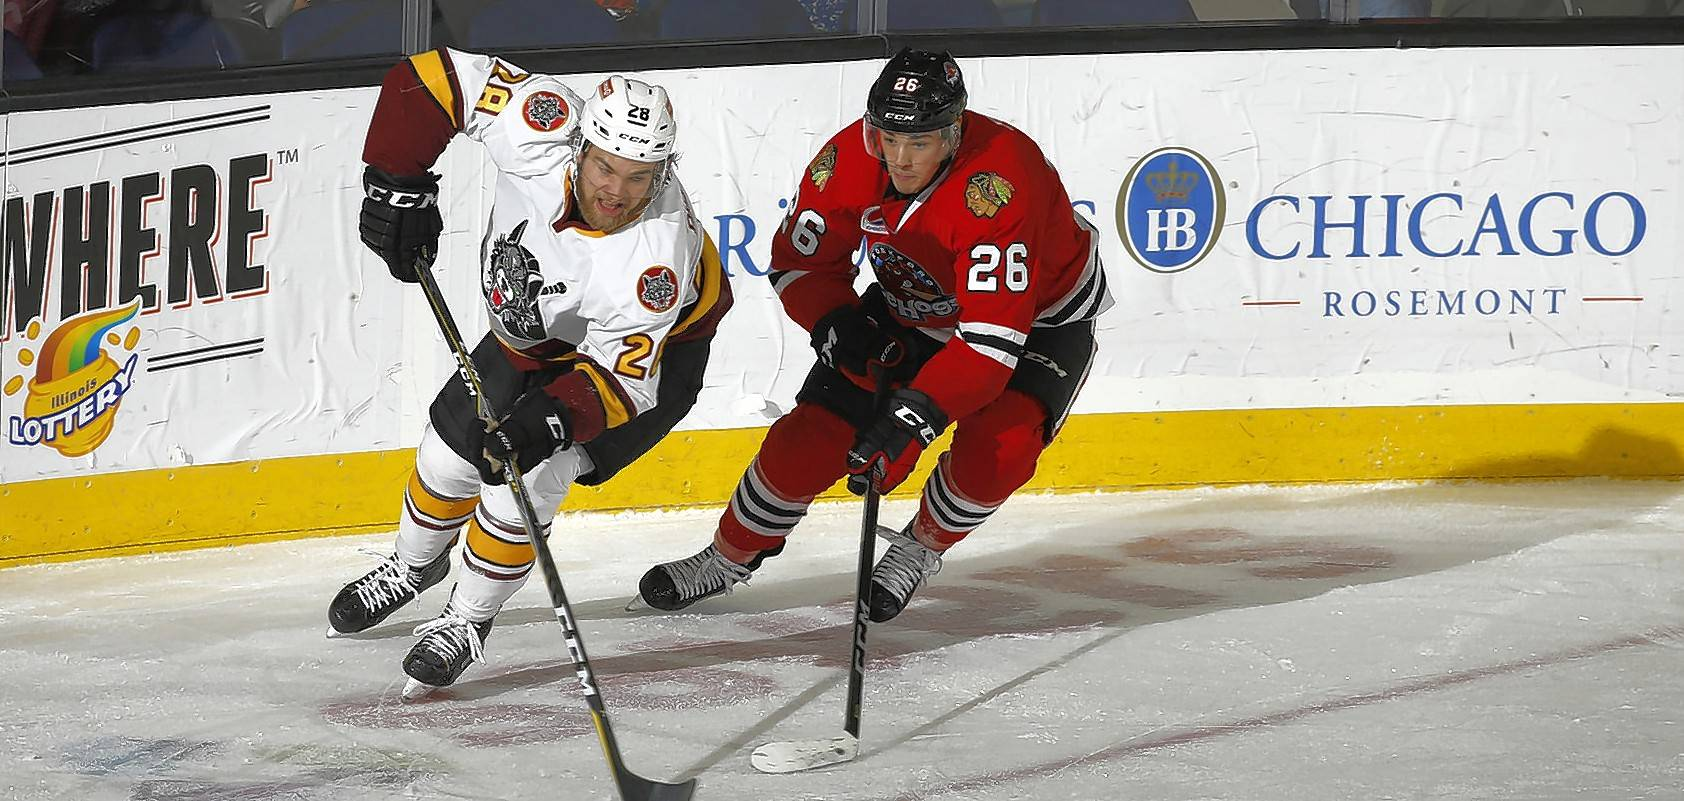 IceHogs are still learning how to stay consistent